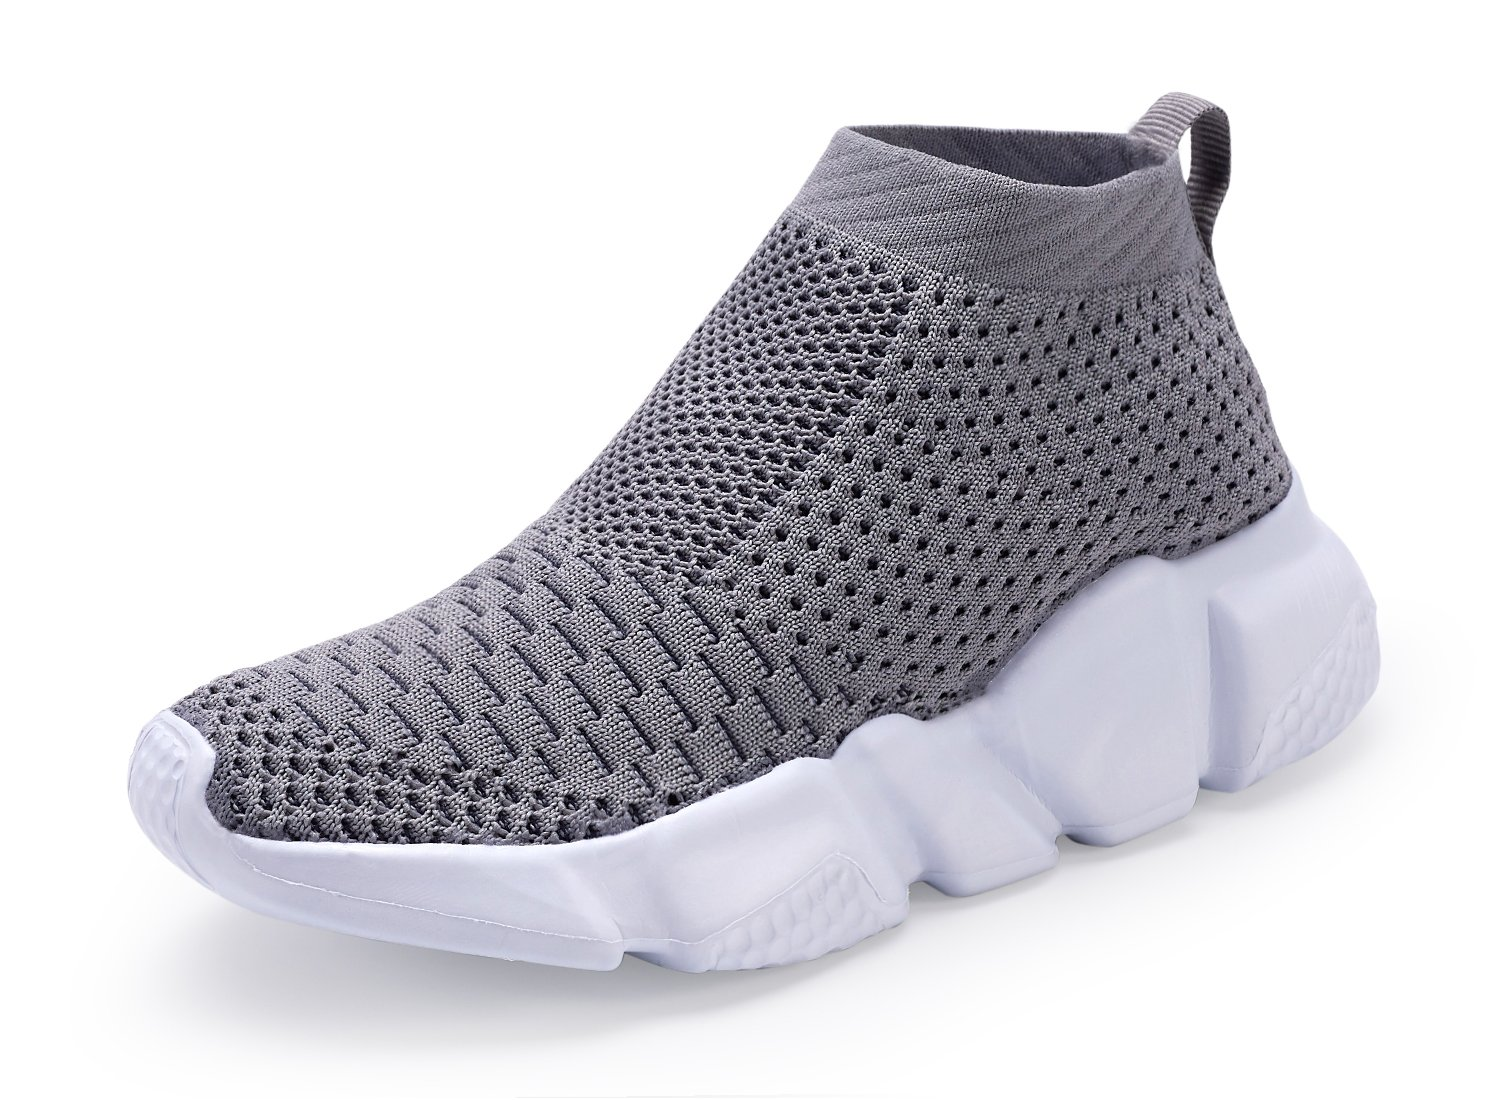 Bling Bo Kids Walking Shoes Boys Girls Running Sports Shoes Mesh Lightweight Breathable Athletic Shoes Fashion Sneakers